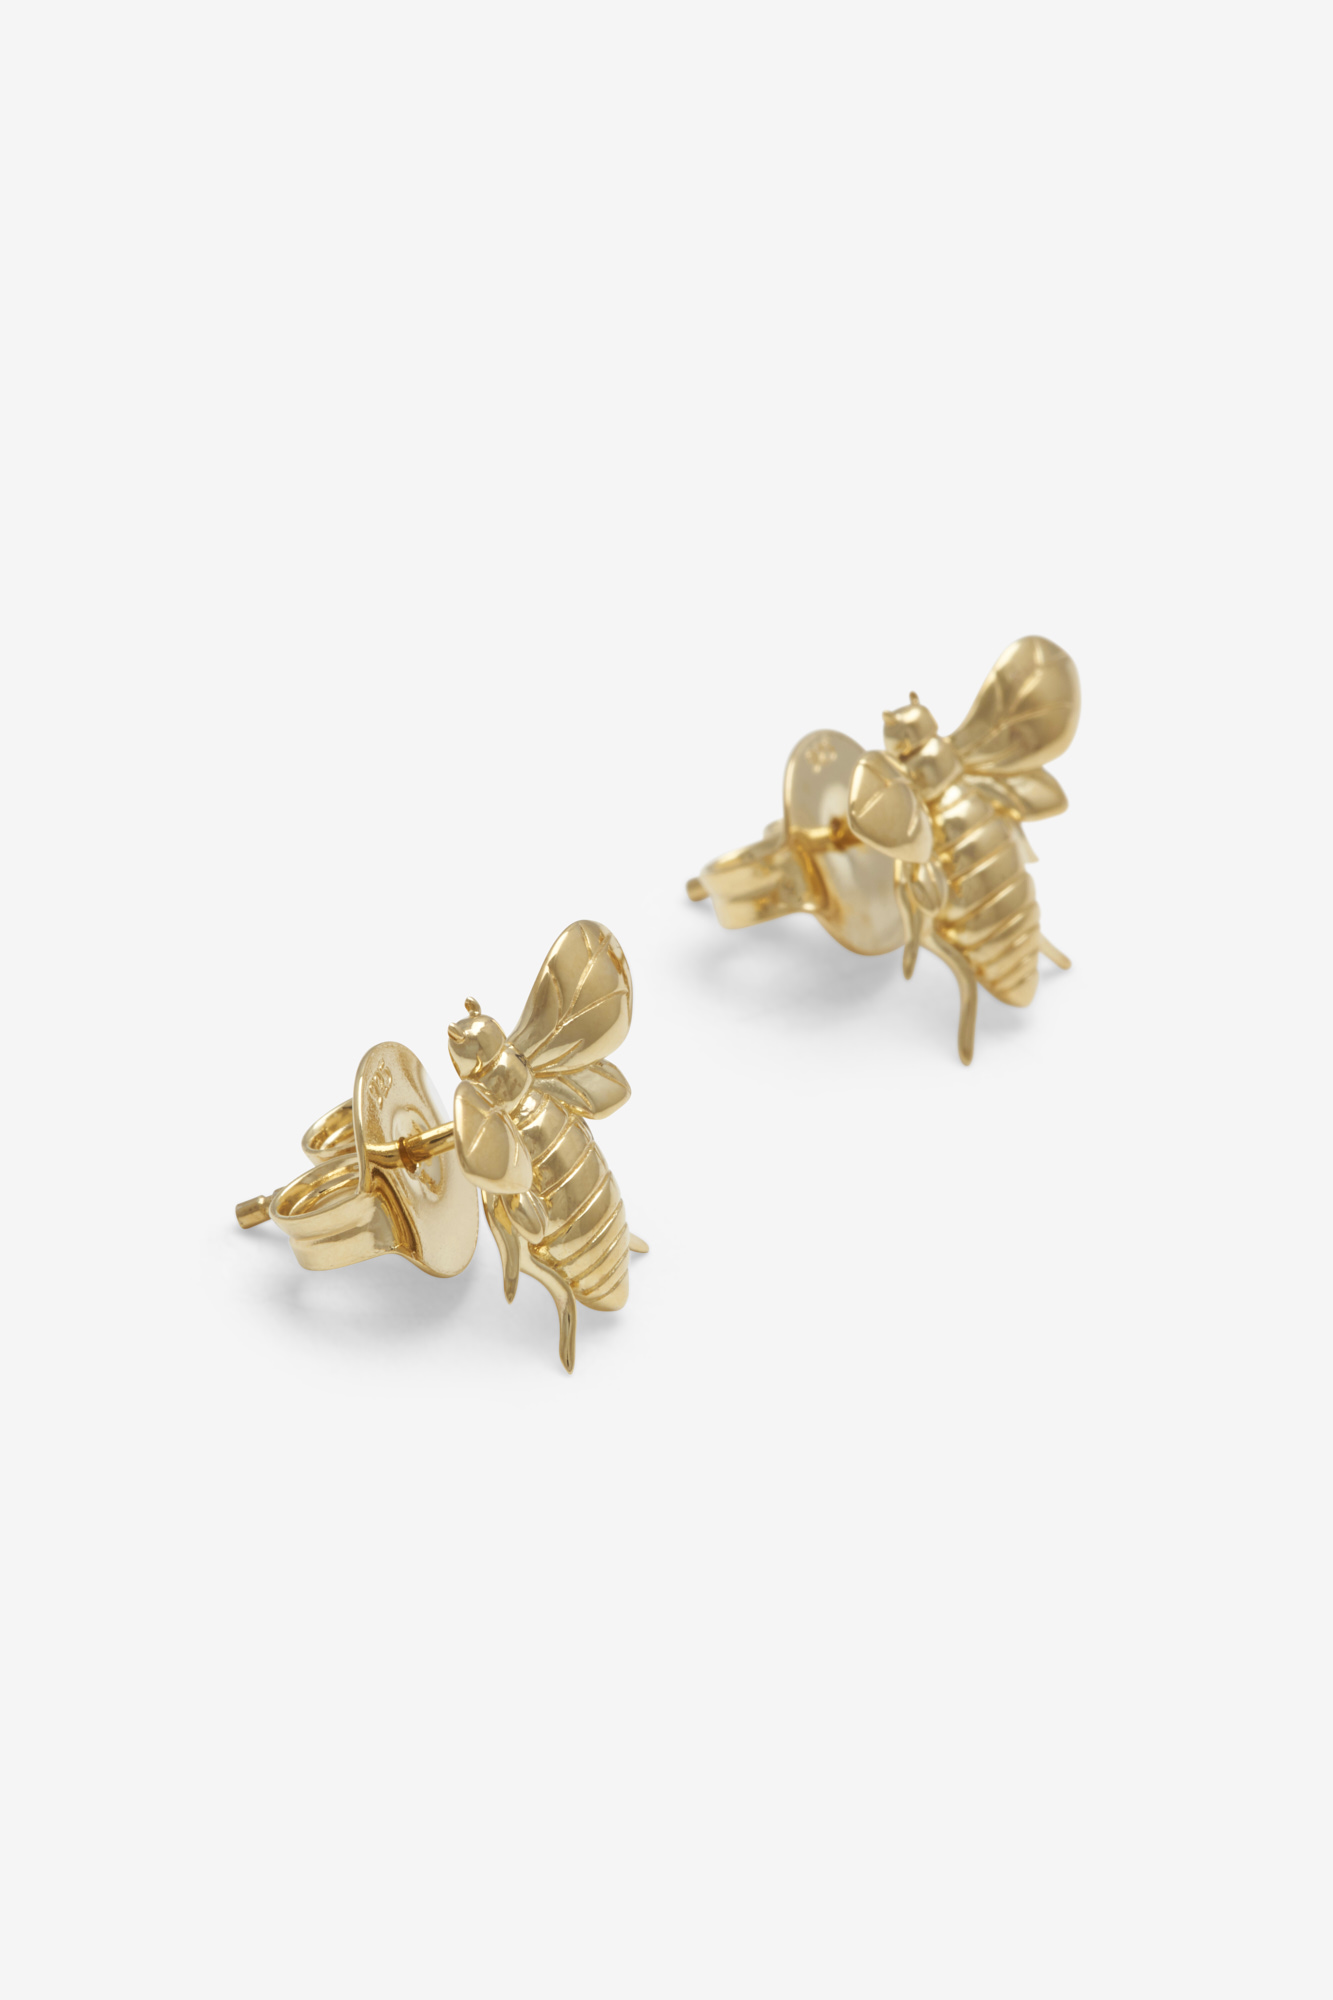 19-03-5-1-001-113-09_Bee Earring_Gold Plated_04